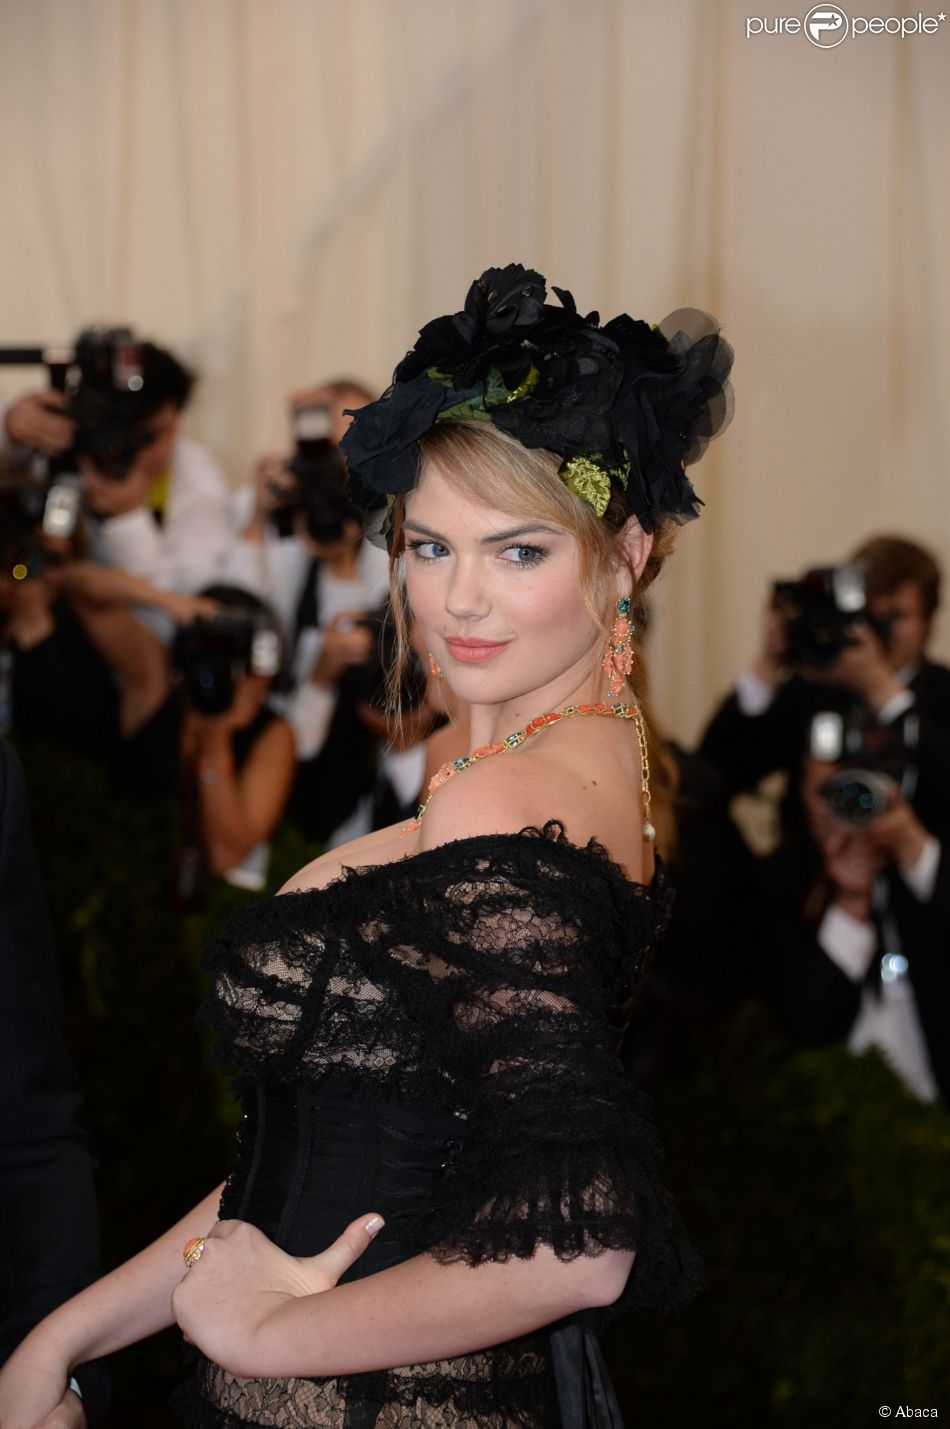 Kate Upton assiste au MET Gala au Metropolitan Museum of Art. New York, le 5 mai 2014.